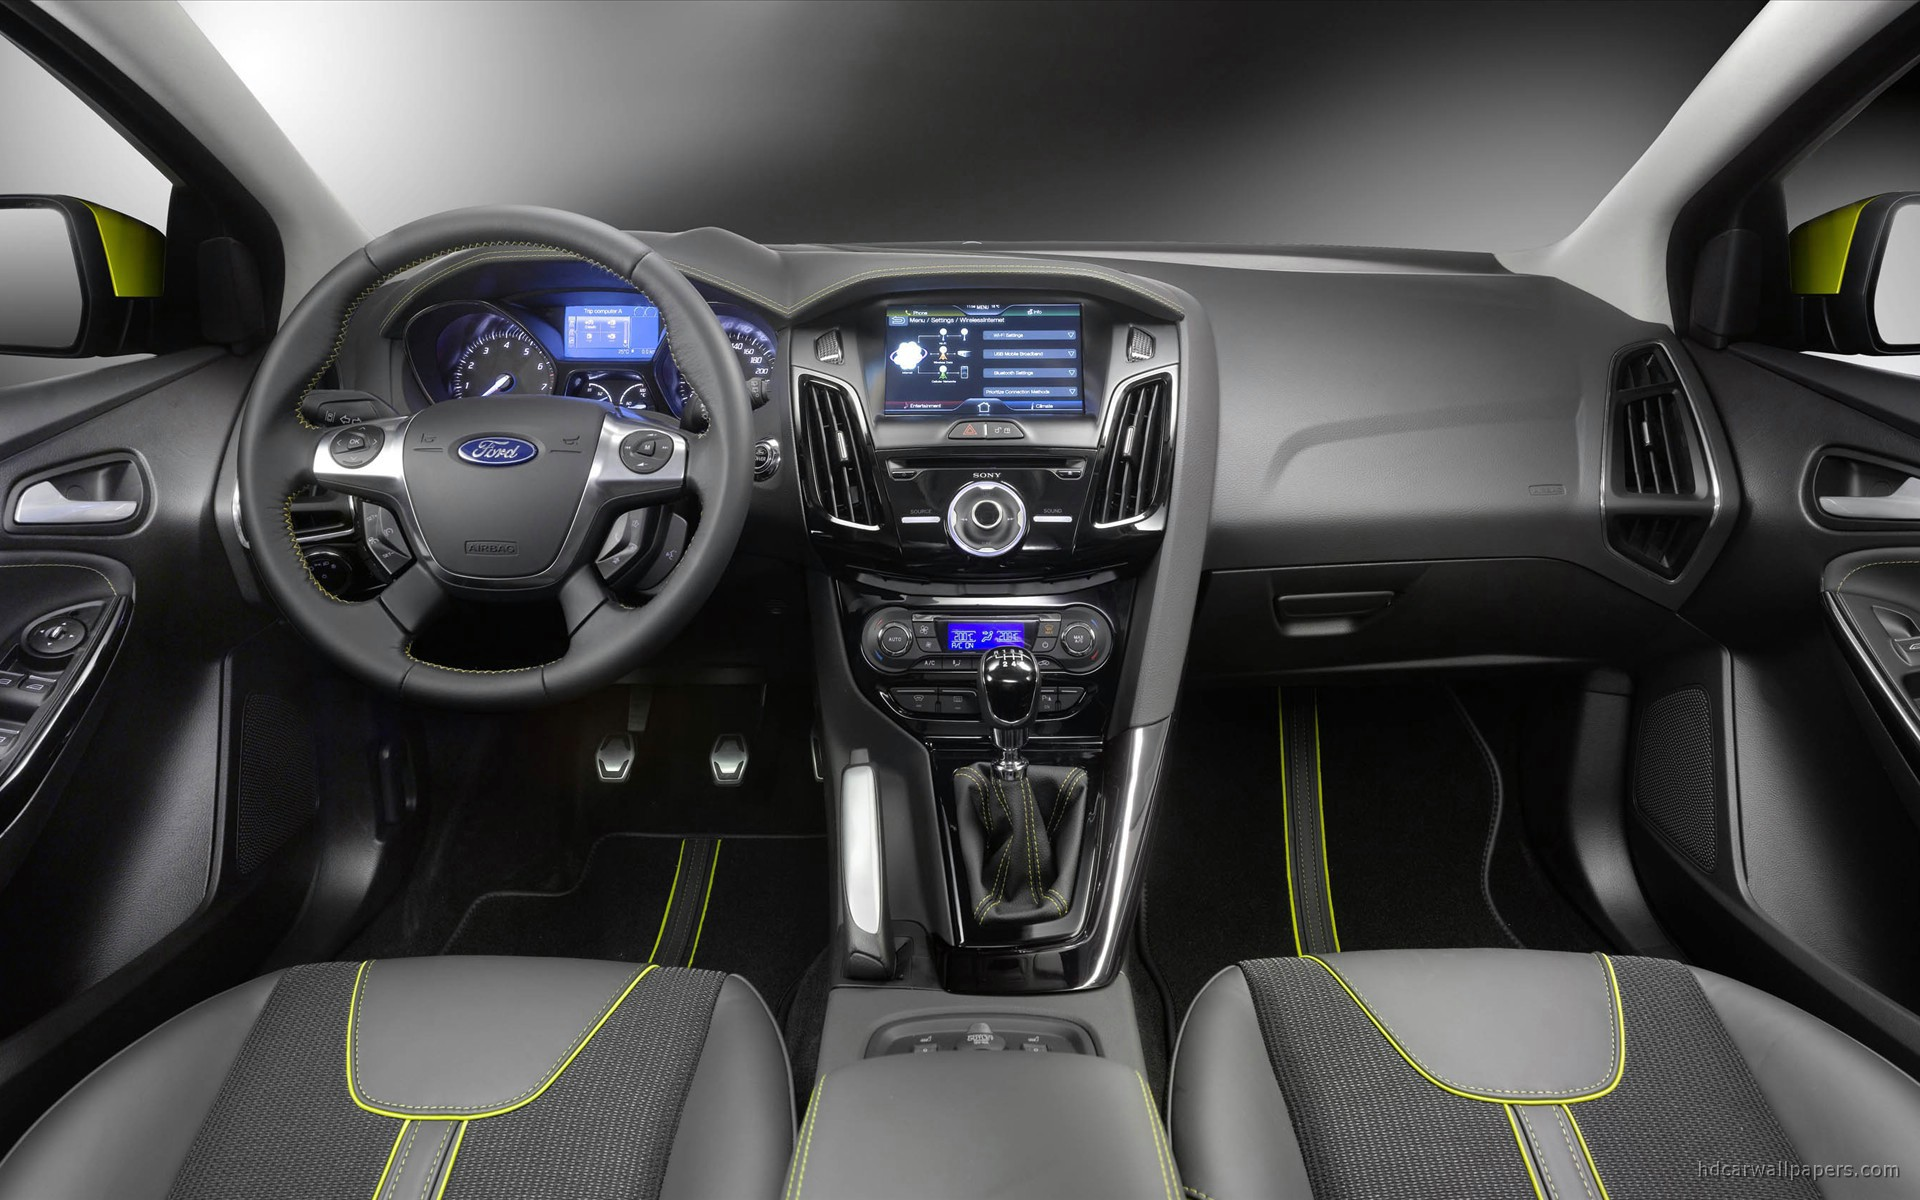 2011 Ford Focus Estate Interior Wallpaper | HD Car ...